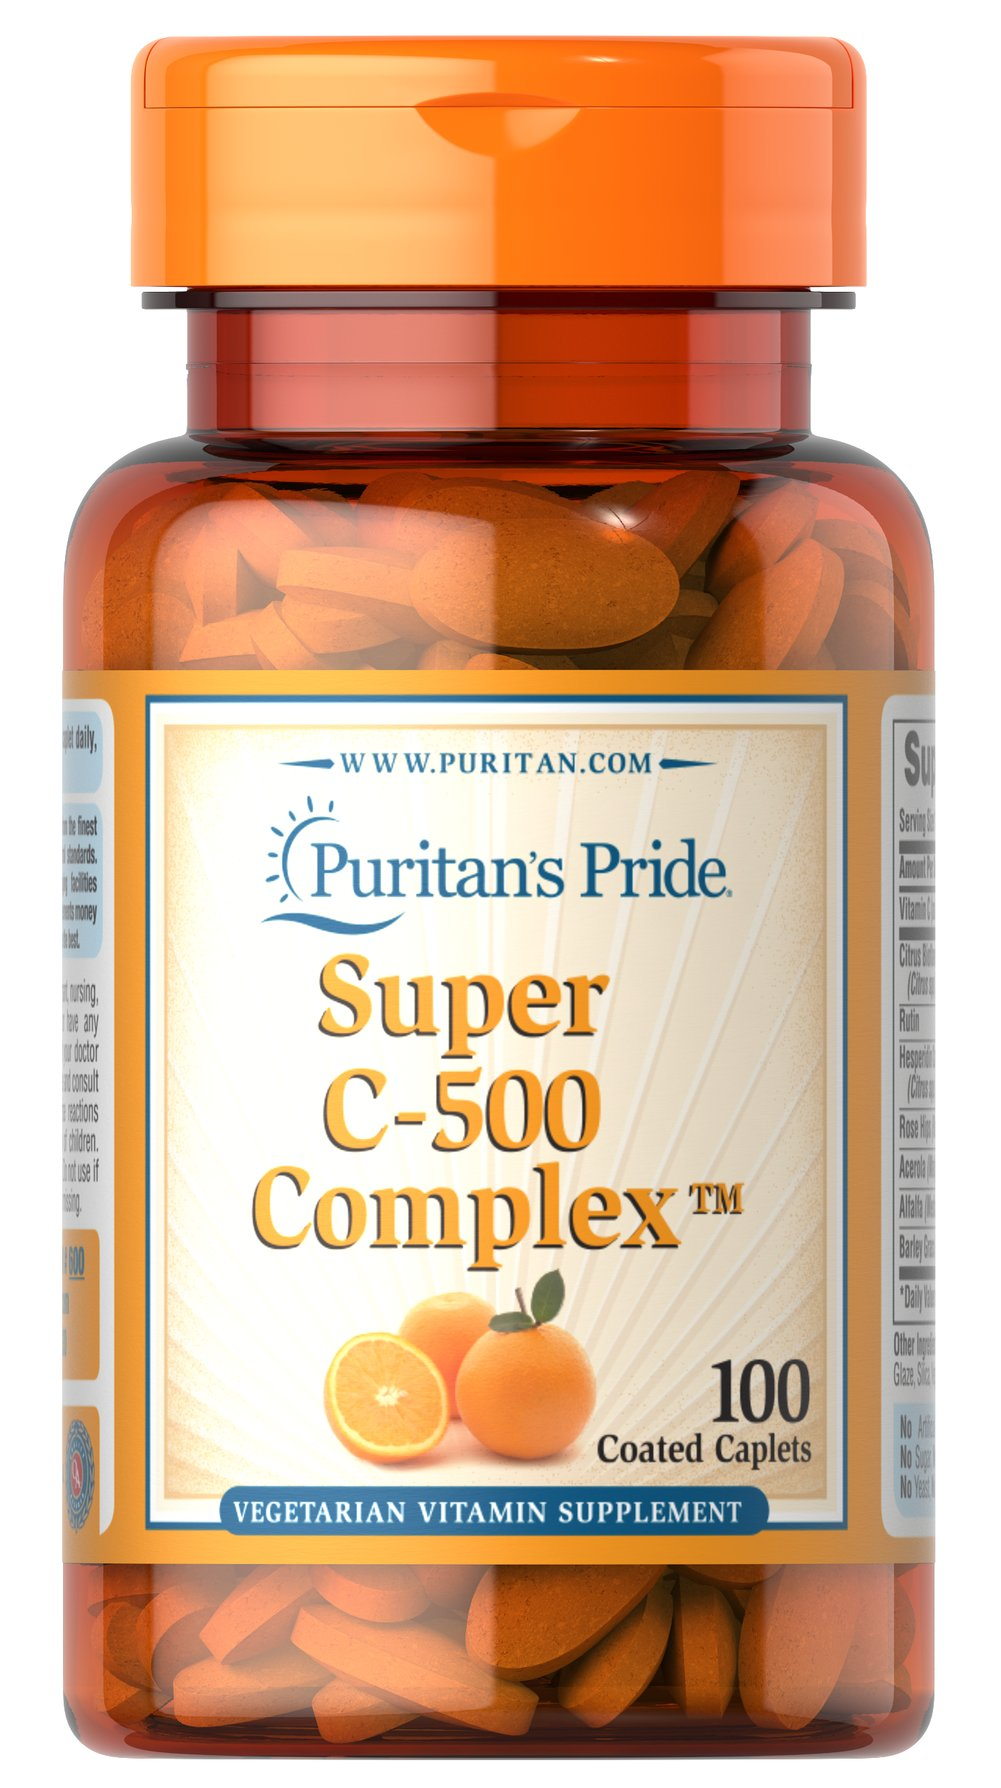 Vitamin C-500 Complex <p>Vitamin C  is essential to many functions in the body and is one of the leading vitamins for immune support.** Our C-complex includes potent Vitamin C as Ascorbic Acid. We also include Citrus Bioflavonoids, Rose Hips, Rutin, and Acerola.**</p><p>Offers superior antioxidant support.**</p><p>Supports healthy immune function and promotes well-being.**</p> 100 Coated Caplets 500 mg $8.39